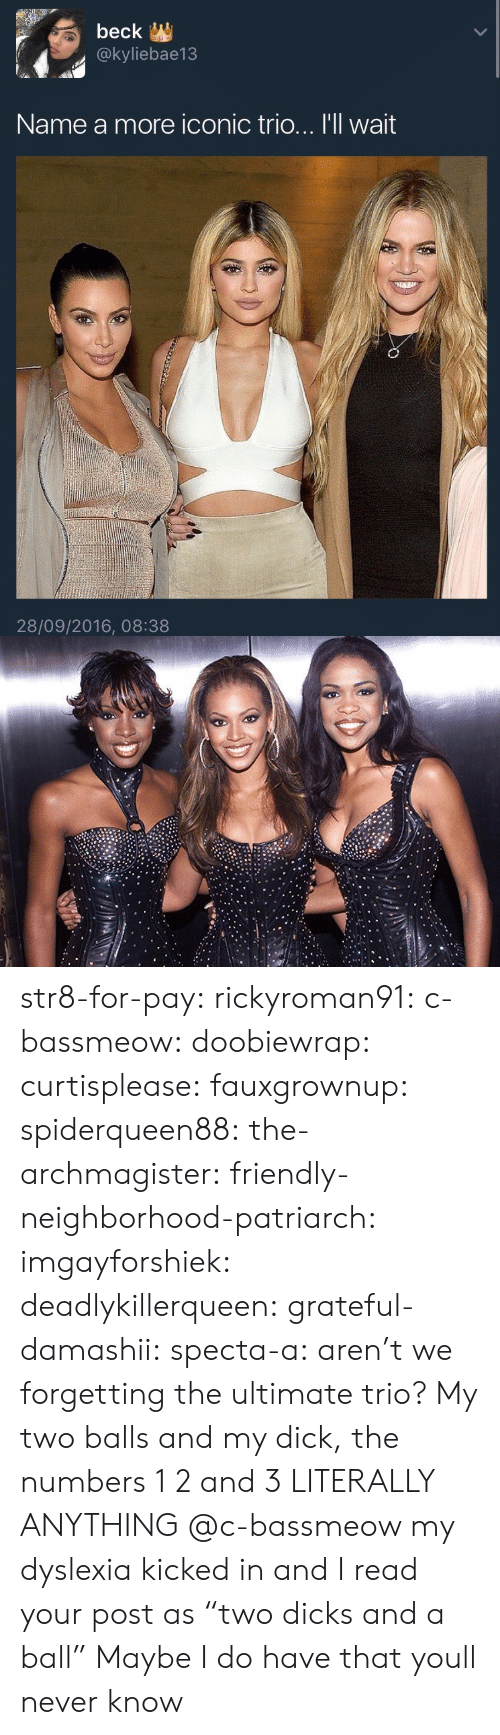 """Dyslexia: beck  @kyliebae13  Name a more iconic trio... I'll wait  28/09/2016, 08:38 str8-for-pay:  rickyroman91:  c-bassmeow:  doobiewrap:  curtisplease:  fauxgrownup:  spiderqueen88:  the-archmagister:  friendly-neighborhood-patriarch:  imgayforshiek:  deadlykillerqueen:  grateful-damashii:  specta-a:          aren't we forgetting the ultimate trio?             My two balls and my dick, the numbers 1 2 and 3 LITERALLY ANYTHING    @c-bassmeow my dyslexia kicked in and I read your post as """"two dicks and a ball""""  Maybe I do have that youll never know"""